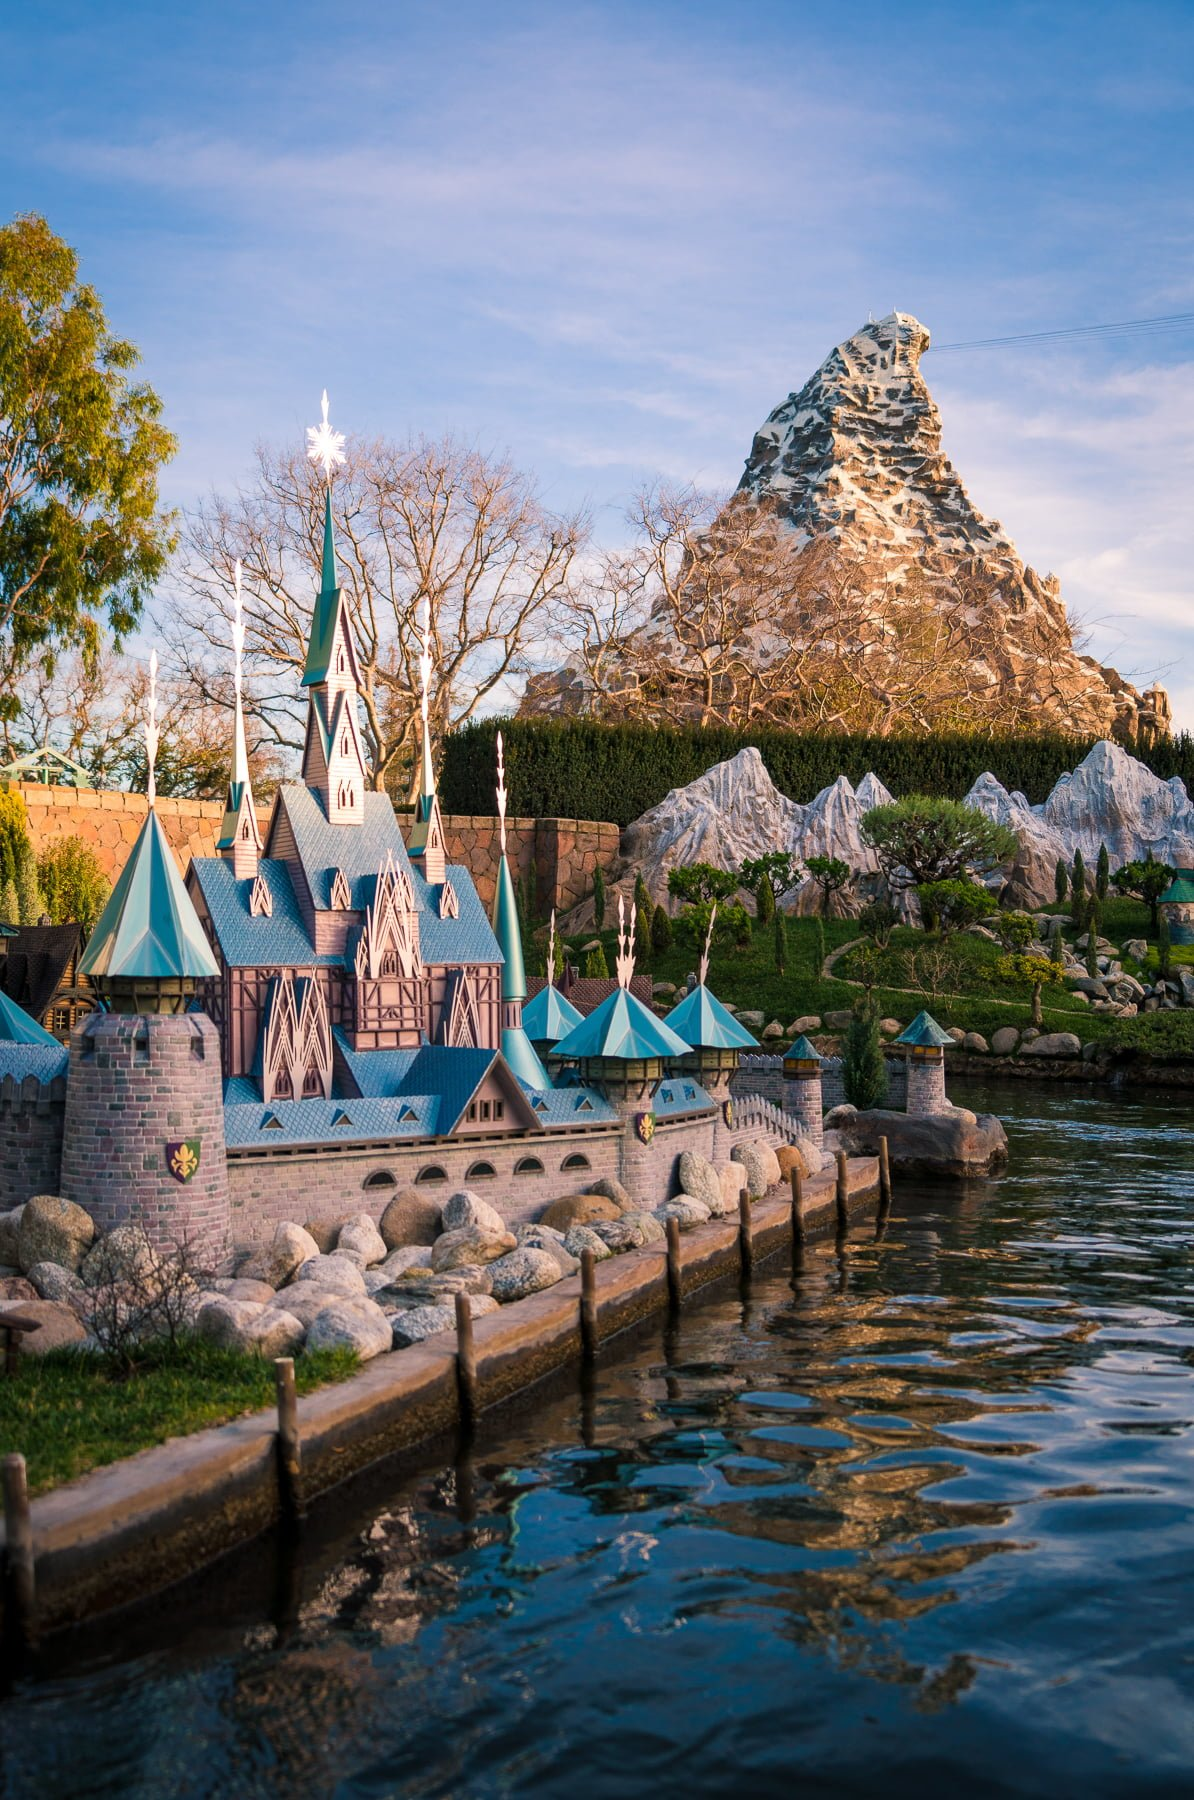 Top 10 Male Models Of All Time: Top 10 Disneyland Attractions